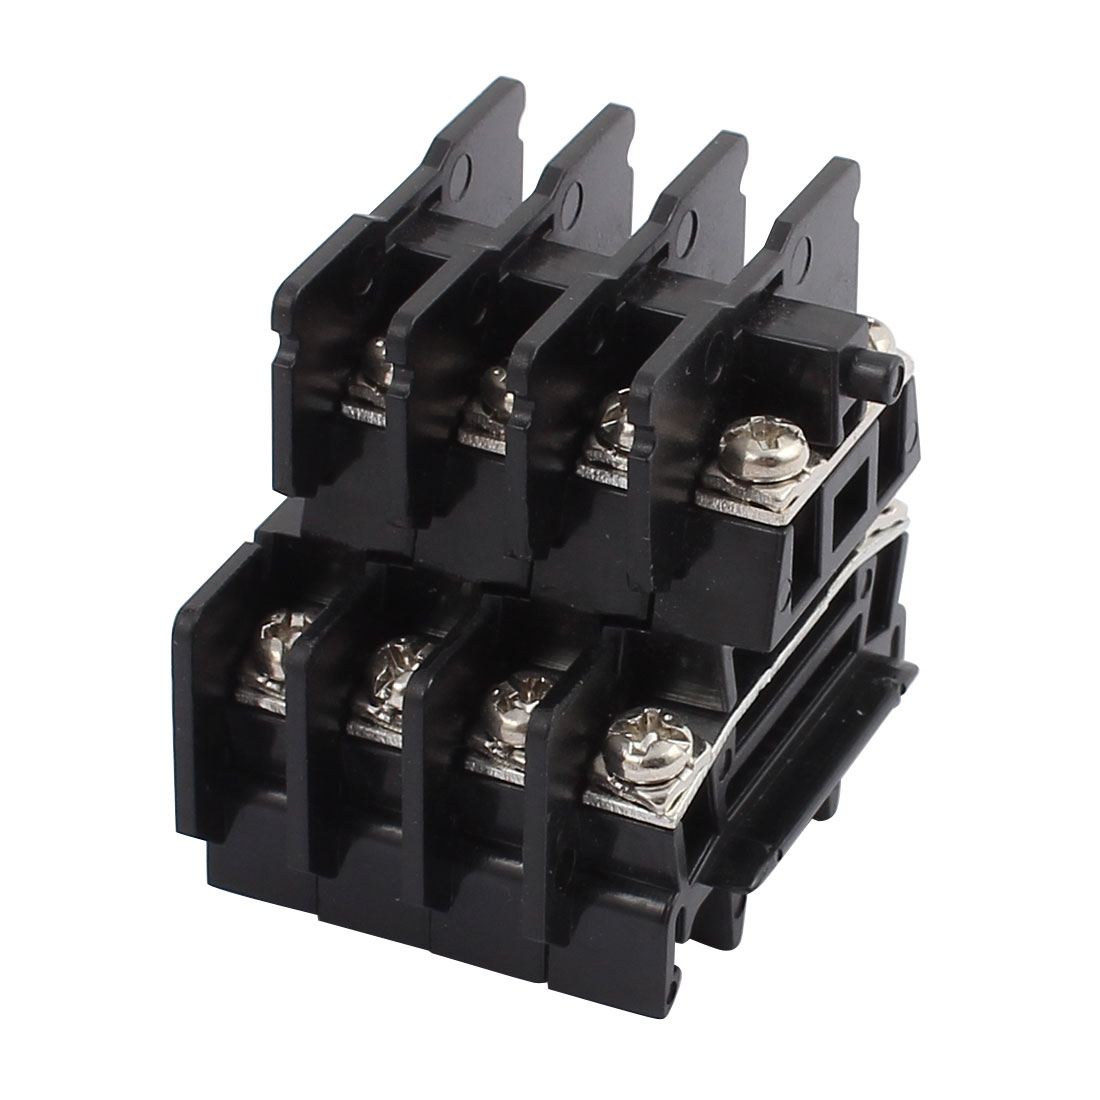 4Pcs SND-10 660V Rail Mount 1.25mm2 Cable Double Type Terminal Blocks Black